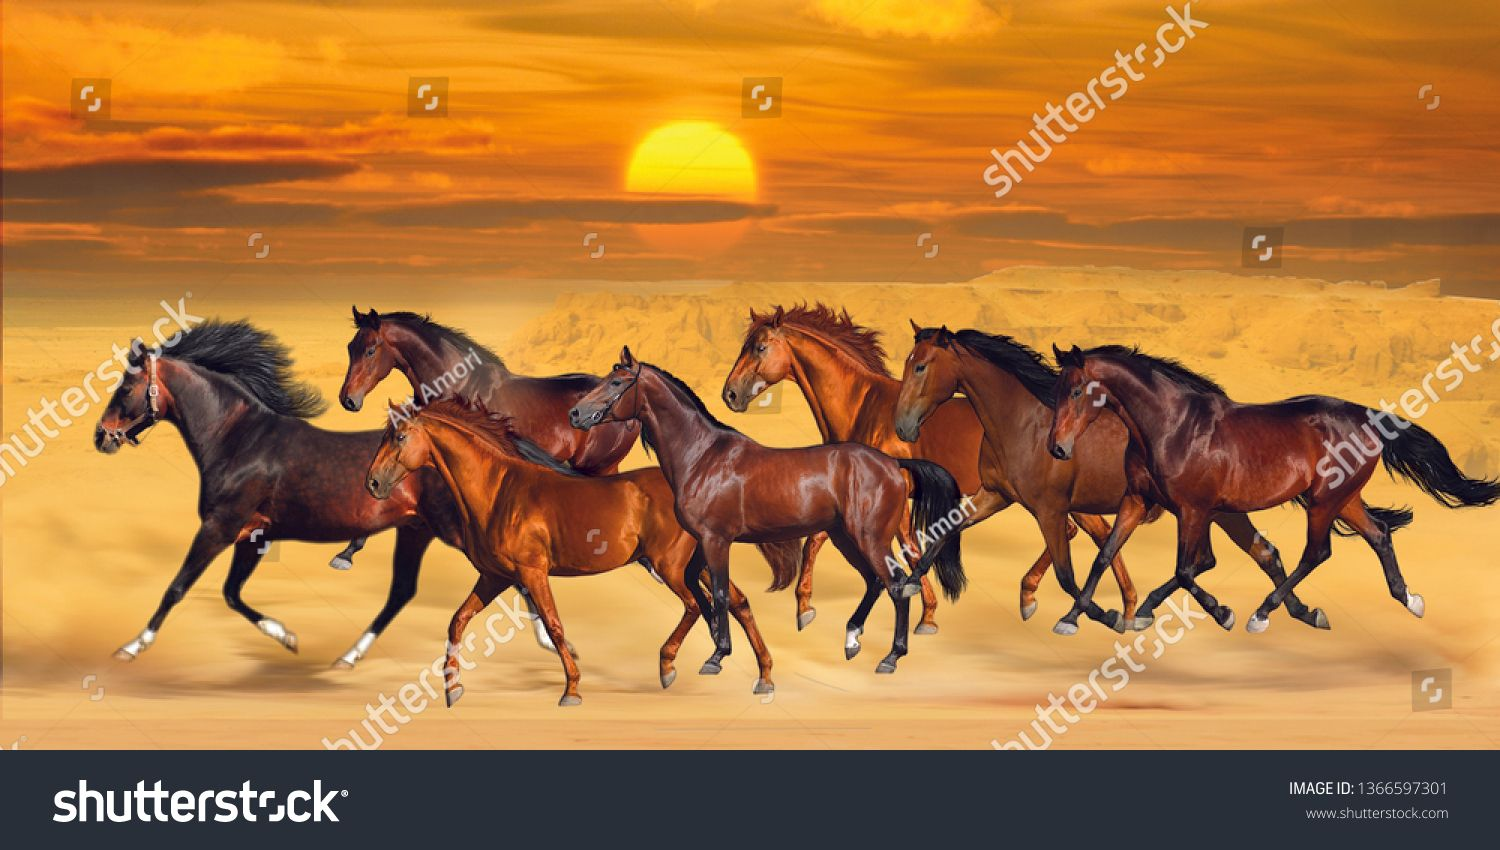 Brown Seven Running Horses On Sea Cost Sunshine Natural Background 3d Wallpaper Graphical Poster Modern Artwork Ad Running Horses Horses Stock Illustration